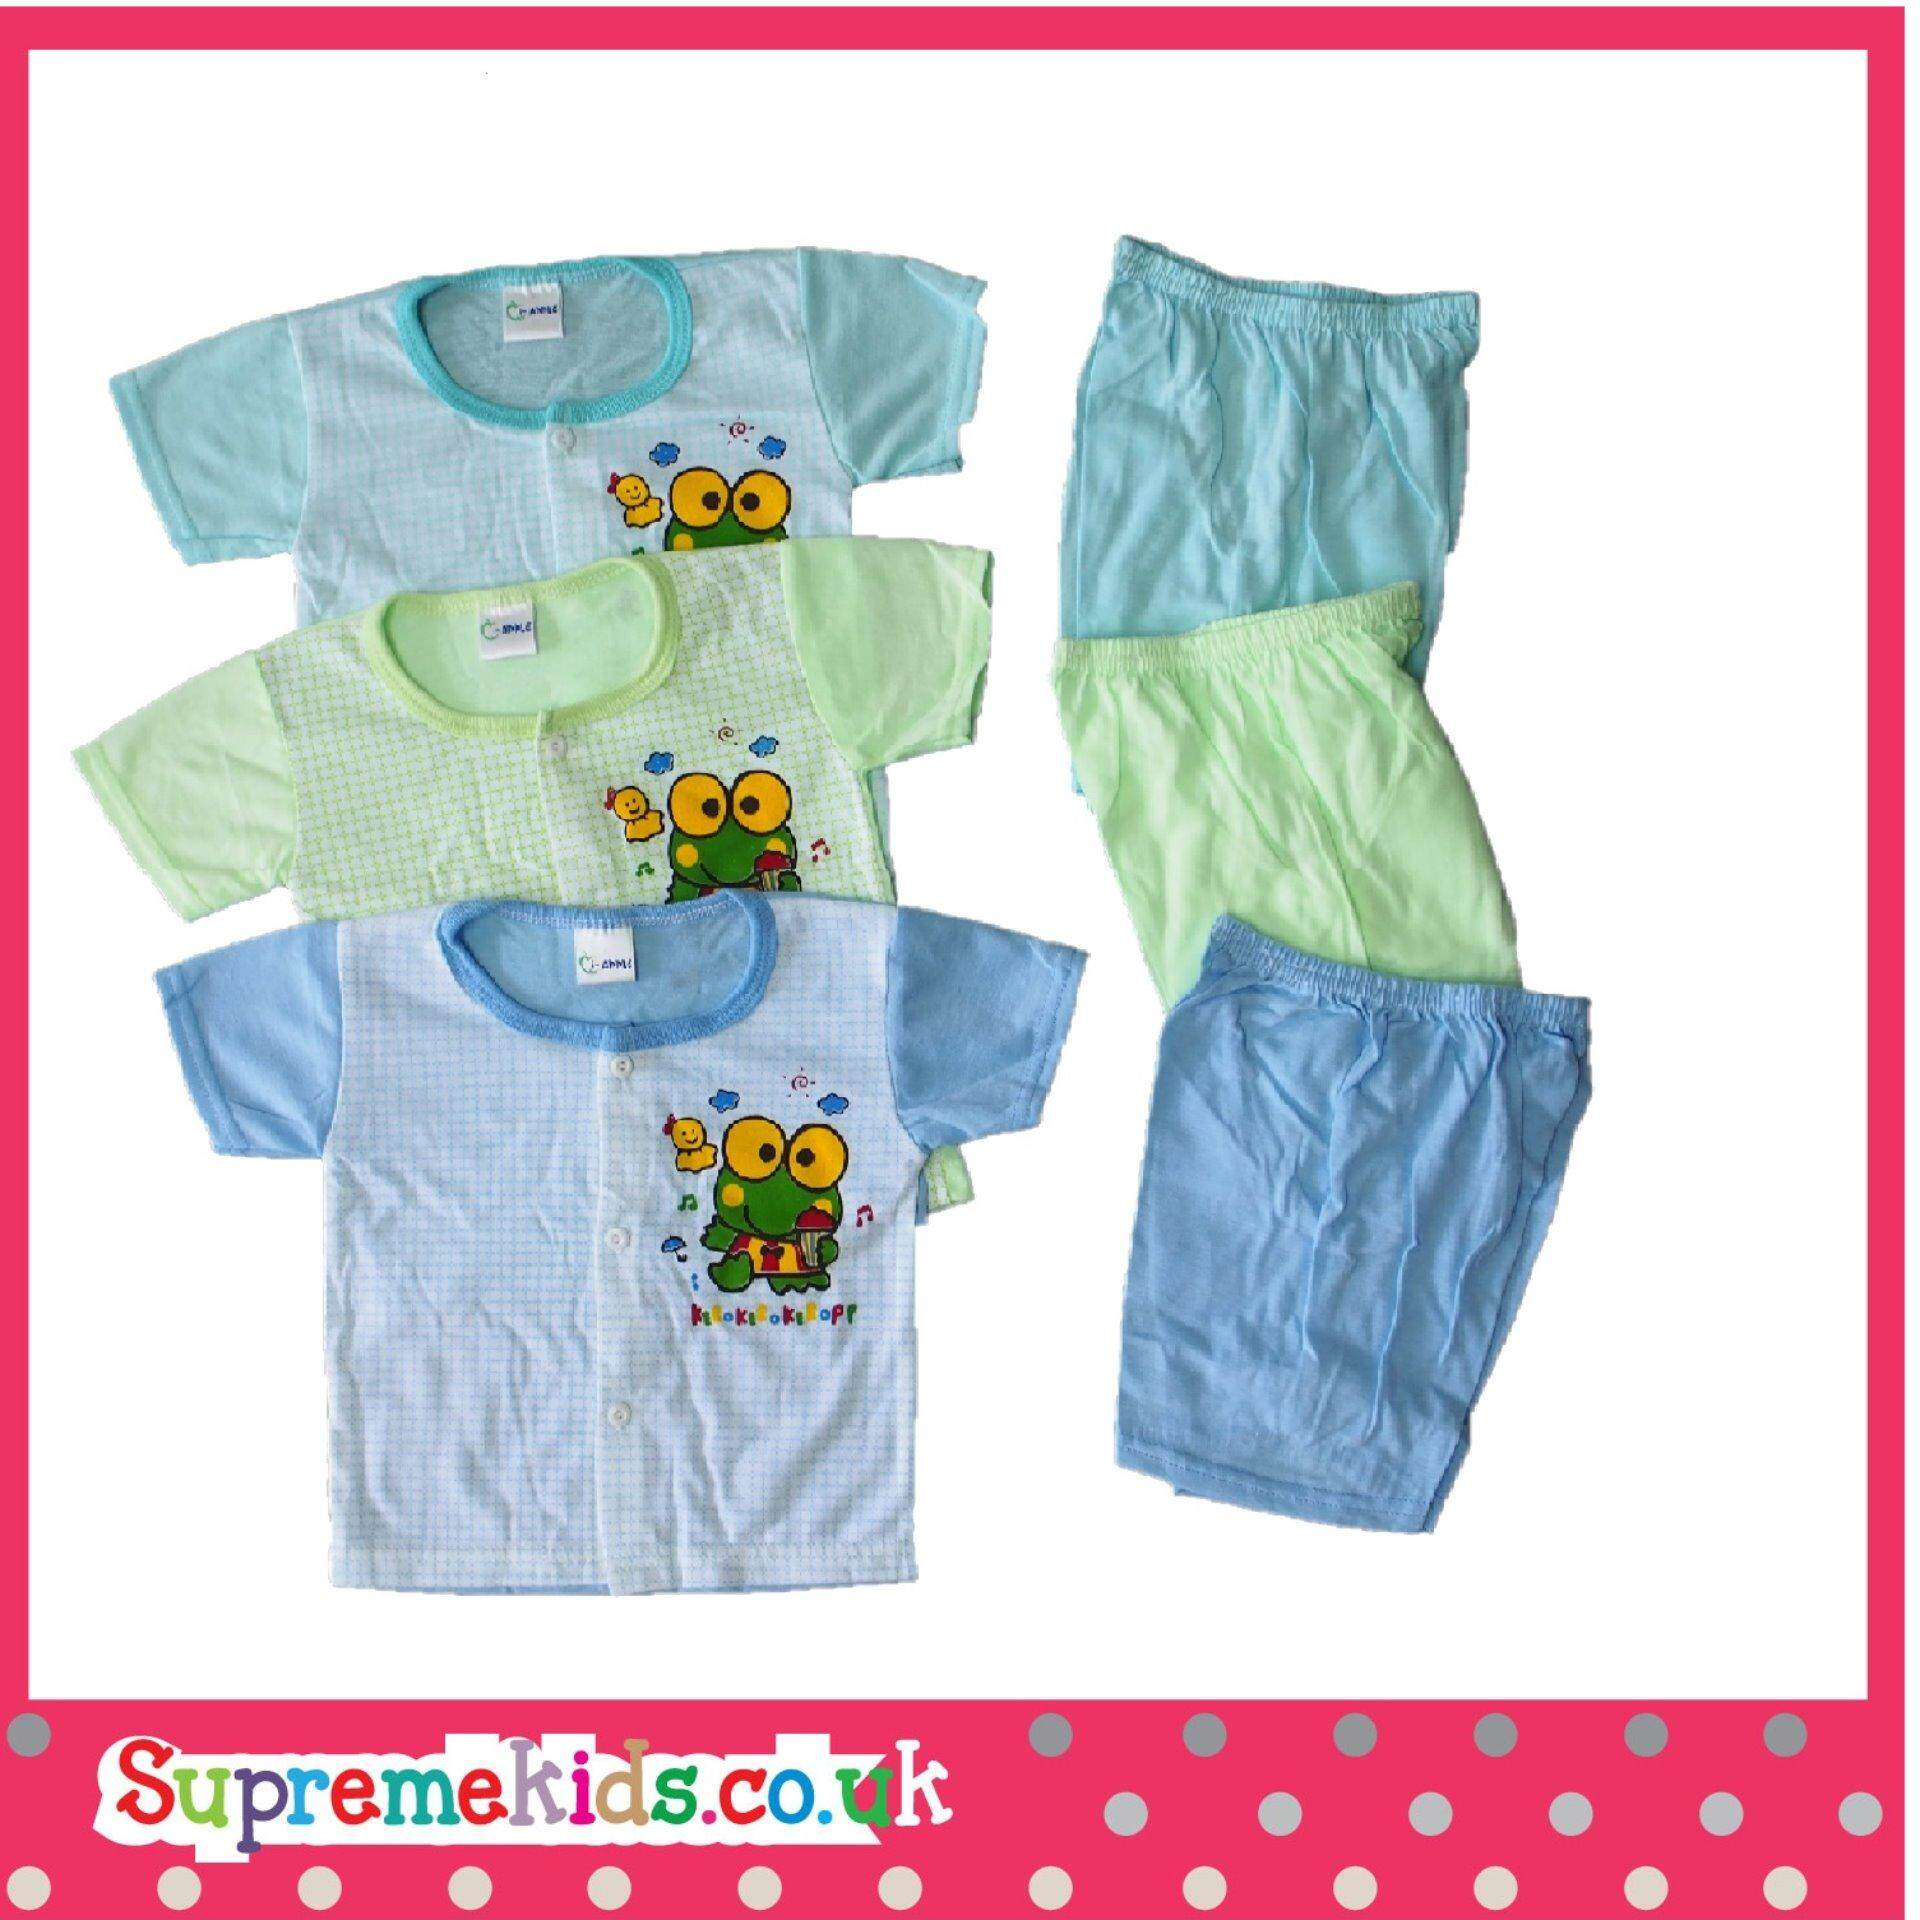 NewBorn & Infant Casual Wear 3 In 1 - 016 (Fit to Age: 6-18Mth Mass:8-12kg Height:69-80CM)